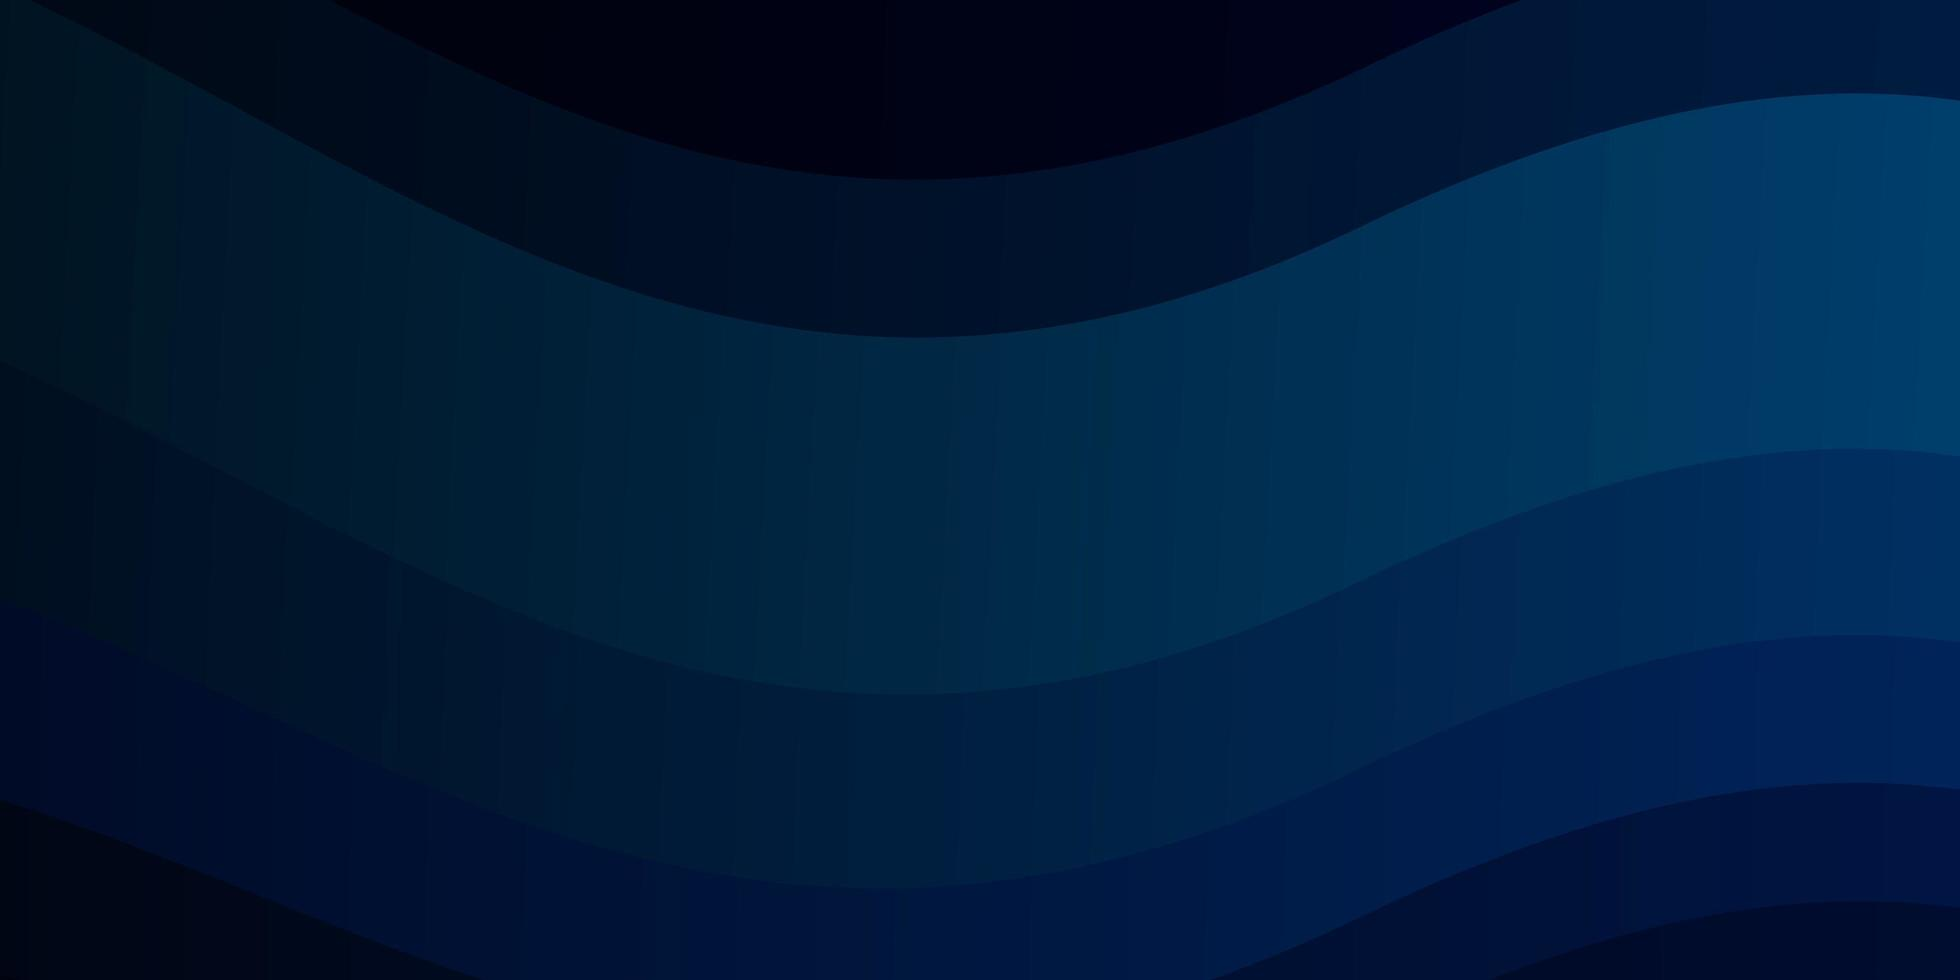 Dark blue template with wry lines. vector